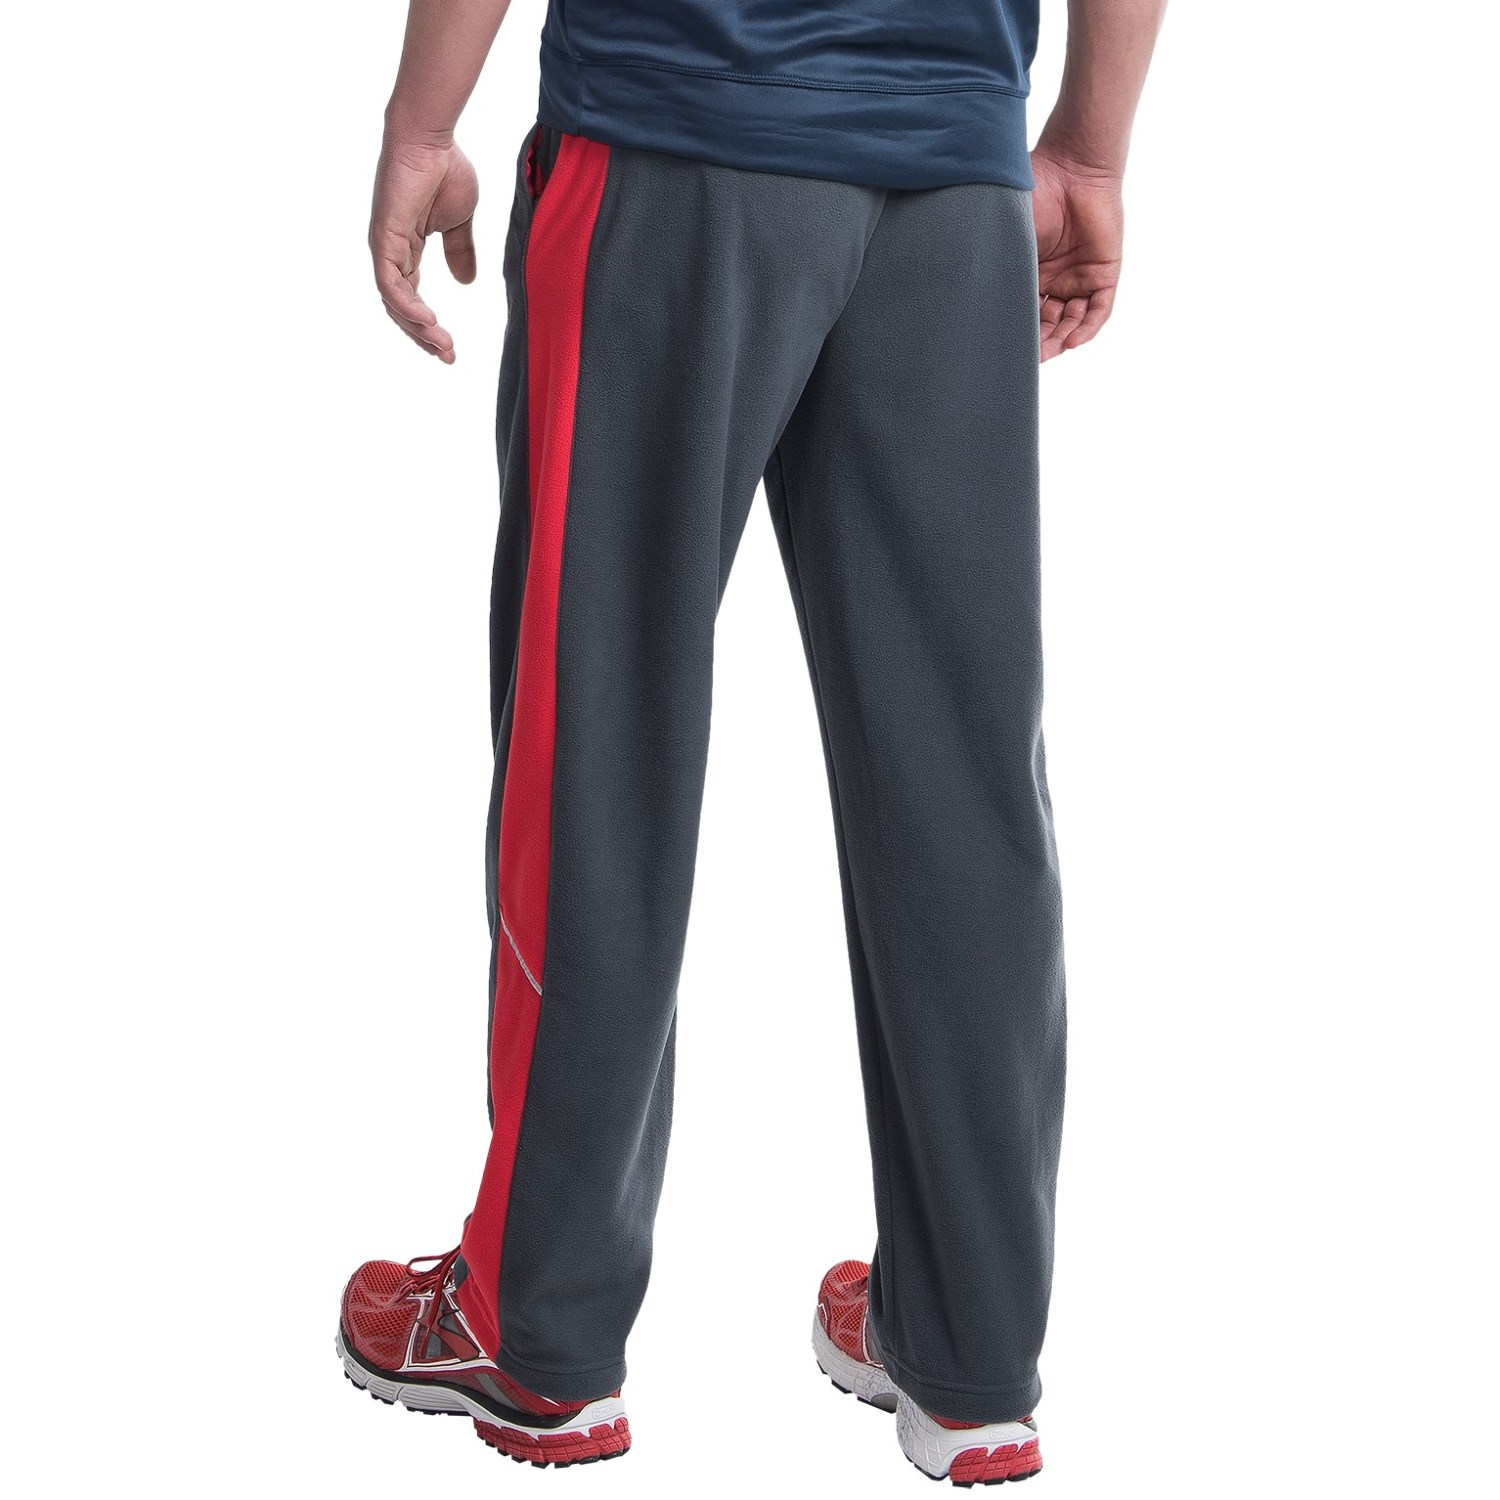 rbx straightleg fleece sweatpants for men save 50